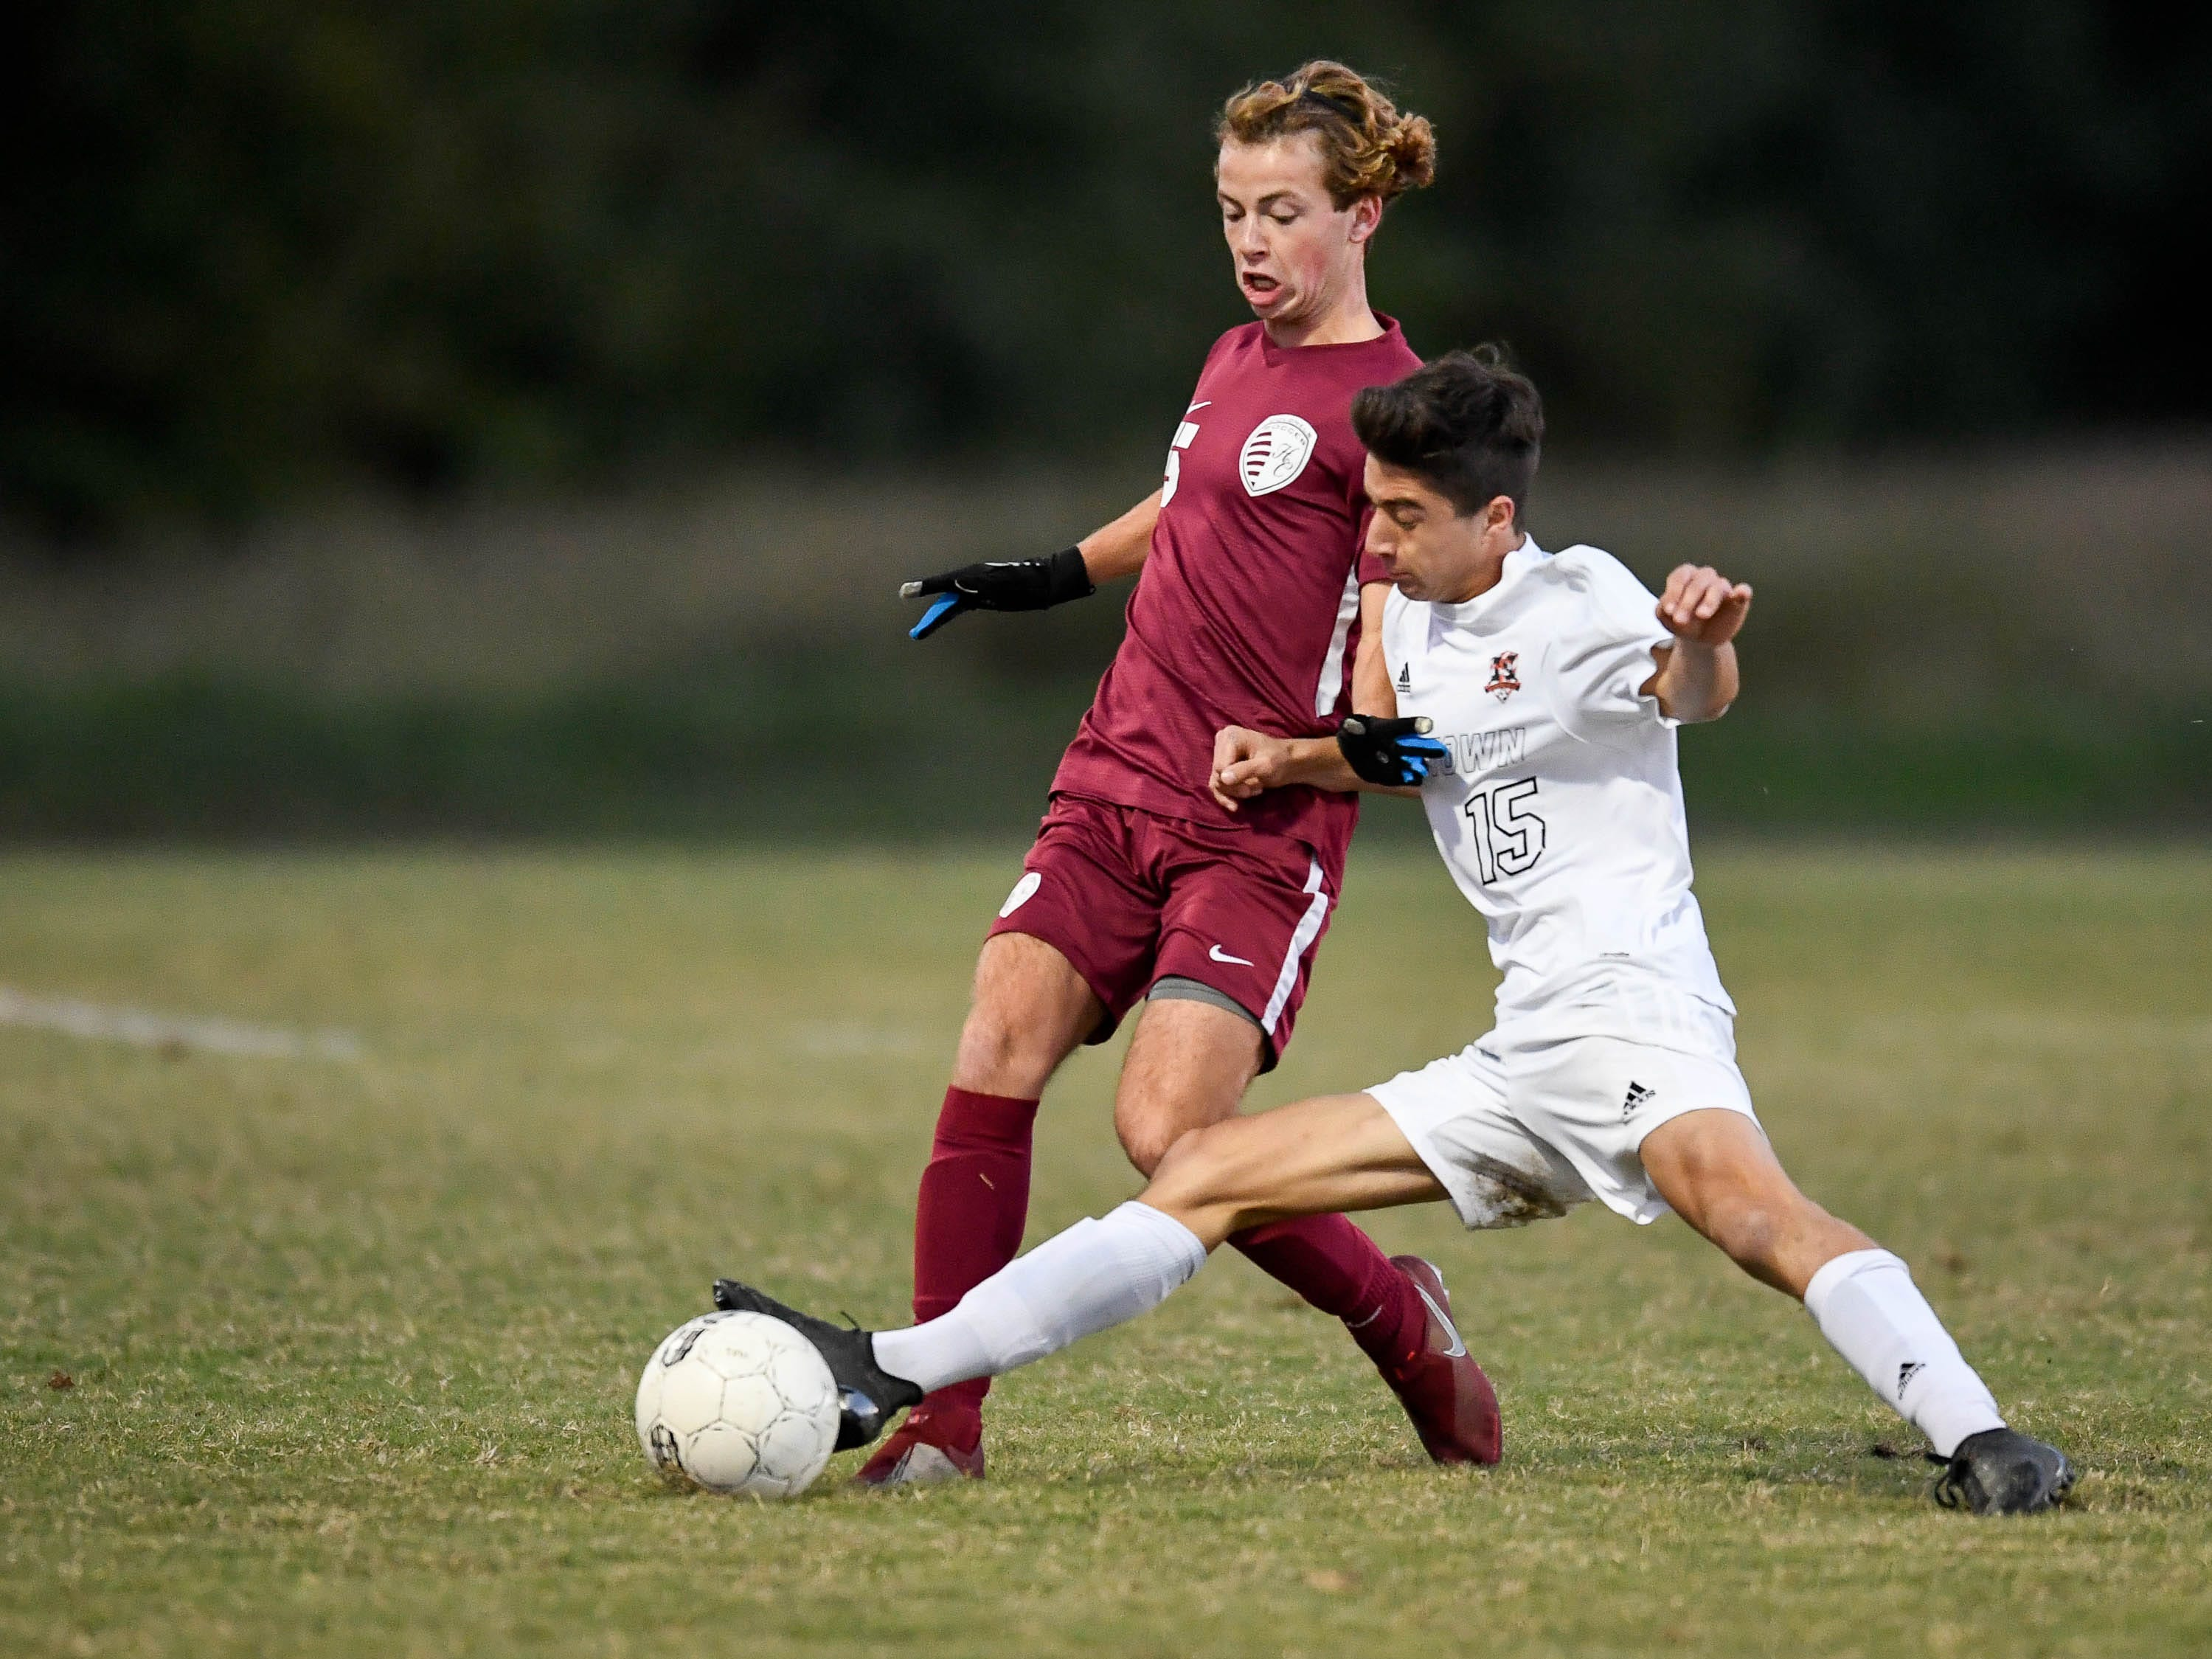 Henderson County's Cale Wright (5) and Hopkinsville's Tyler Greenwell (15) battle for the ball as the Henderson County Colonels play the Hopkinsville Tigers in the regional final at Madisonville-North Hopkins High School Thursday, October 18, 2018.